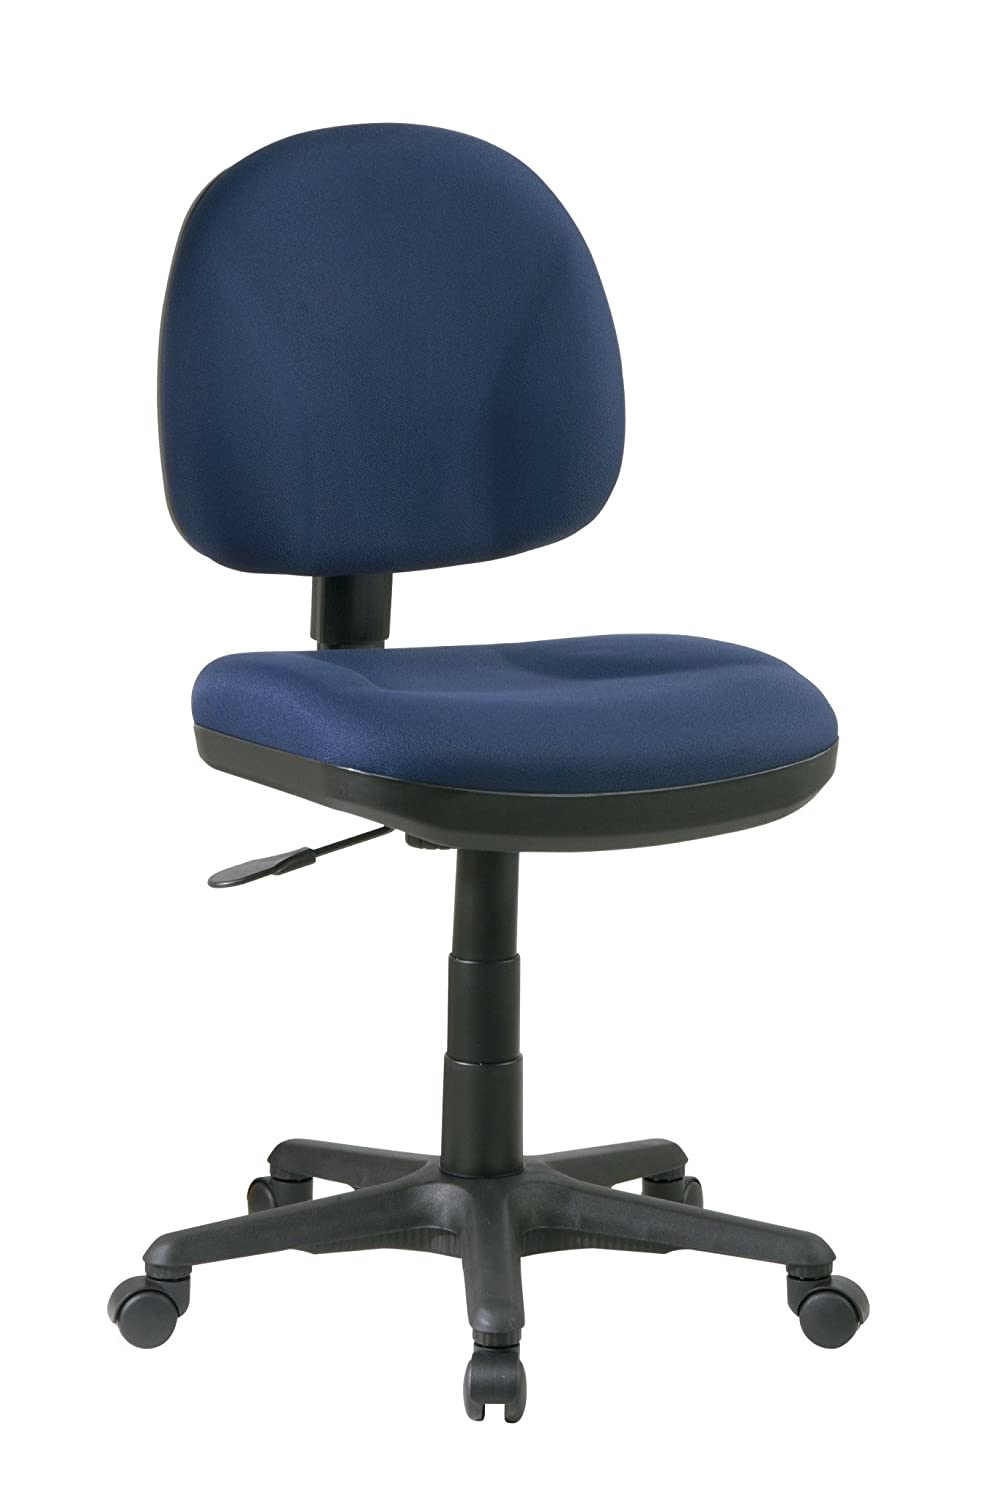 Office Star Sculptured Thick Padded Seat and Back with Built-in Lumbar Support Task Chair without Arms, Navy